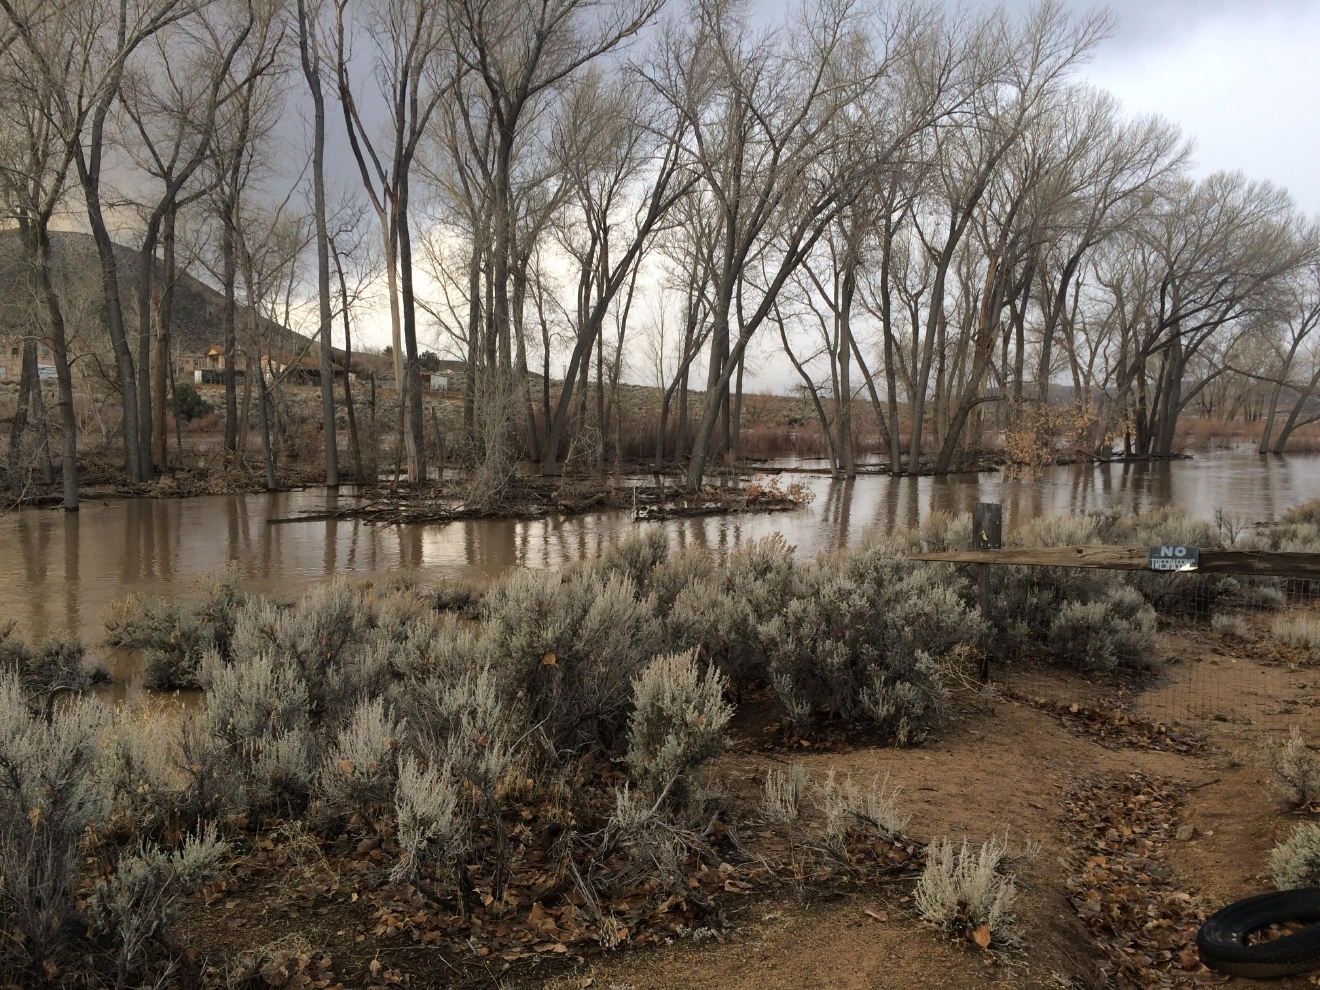 The Carson River hit 'Major Flood Stage' on Tuesday, Jan. 10.